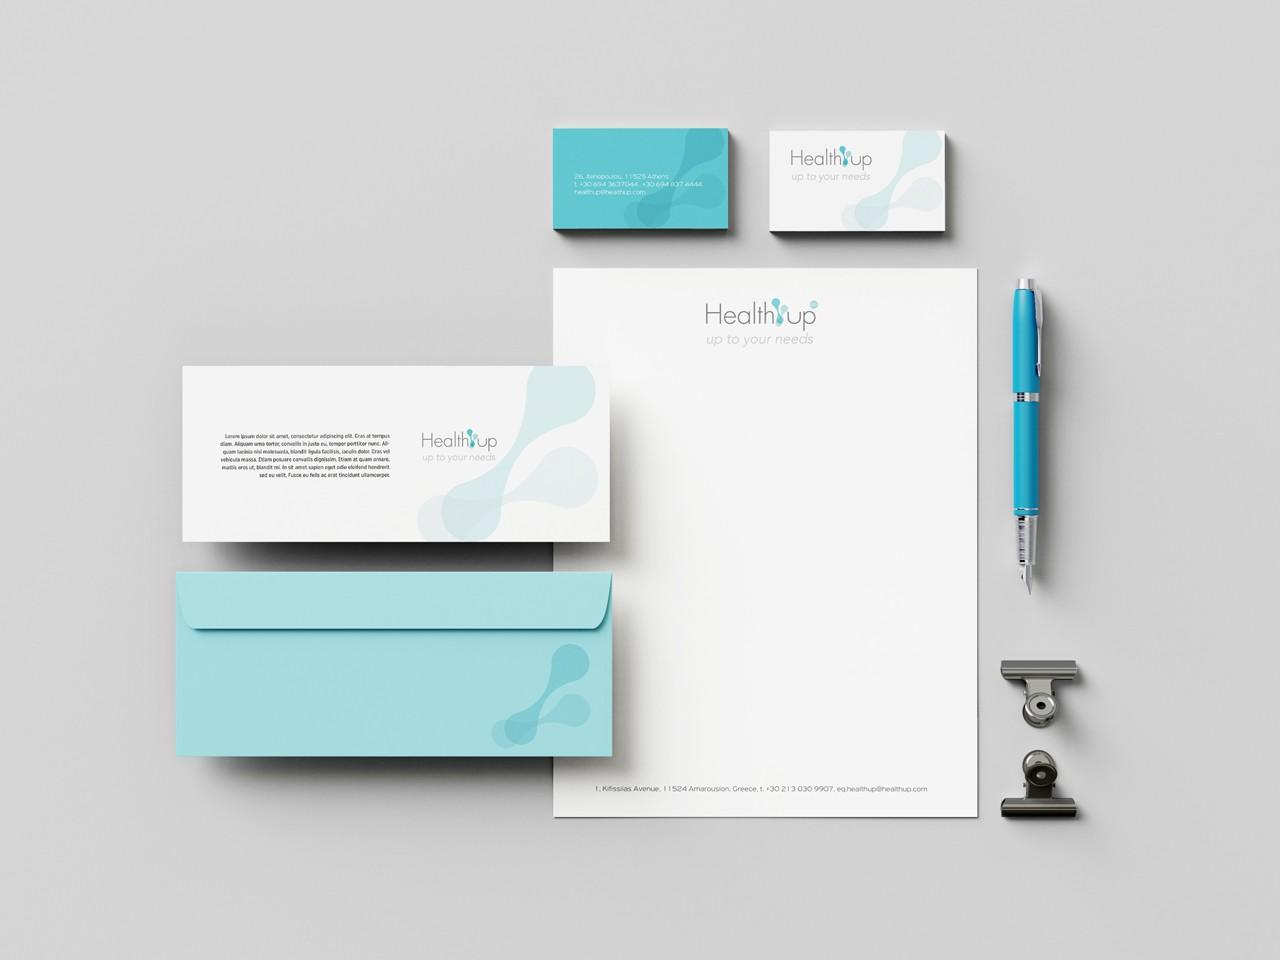 HealthUp-corporate identity design